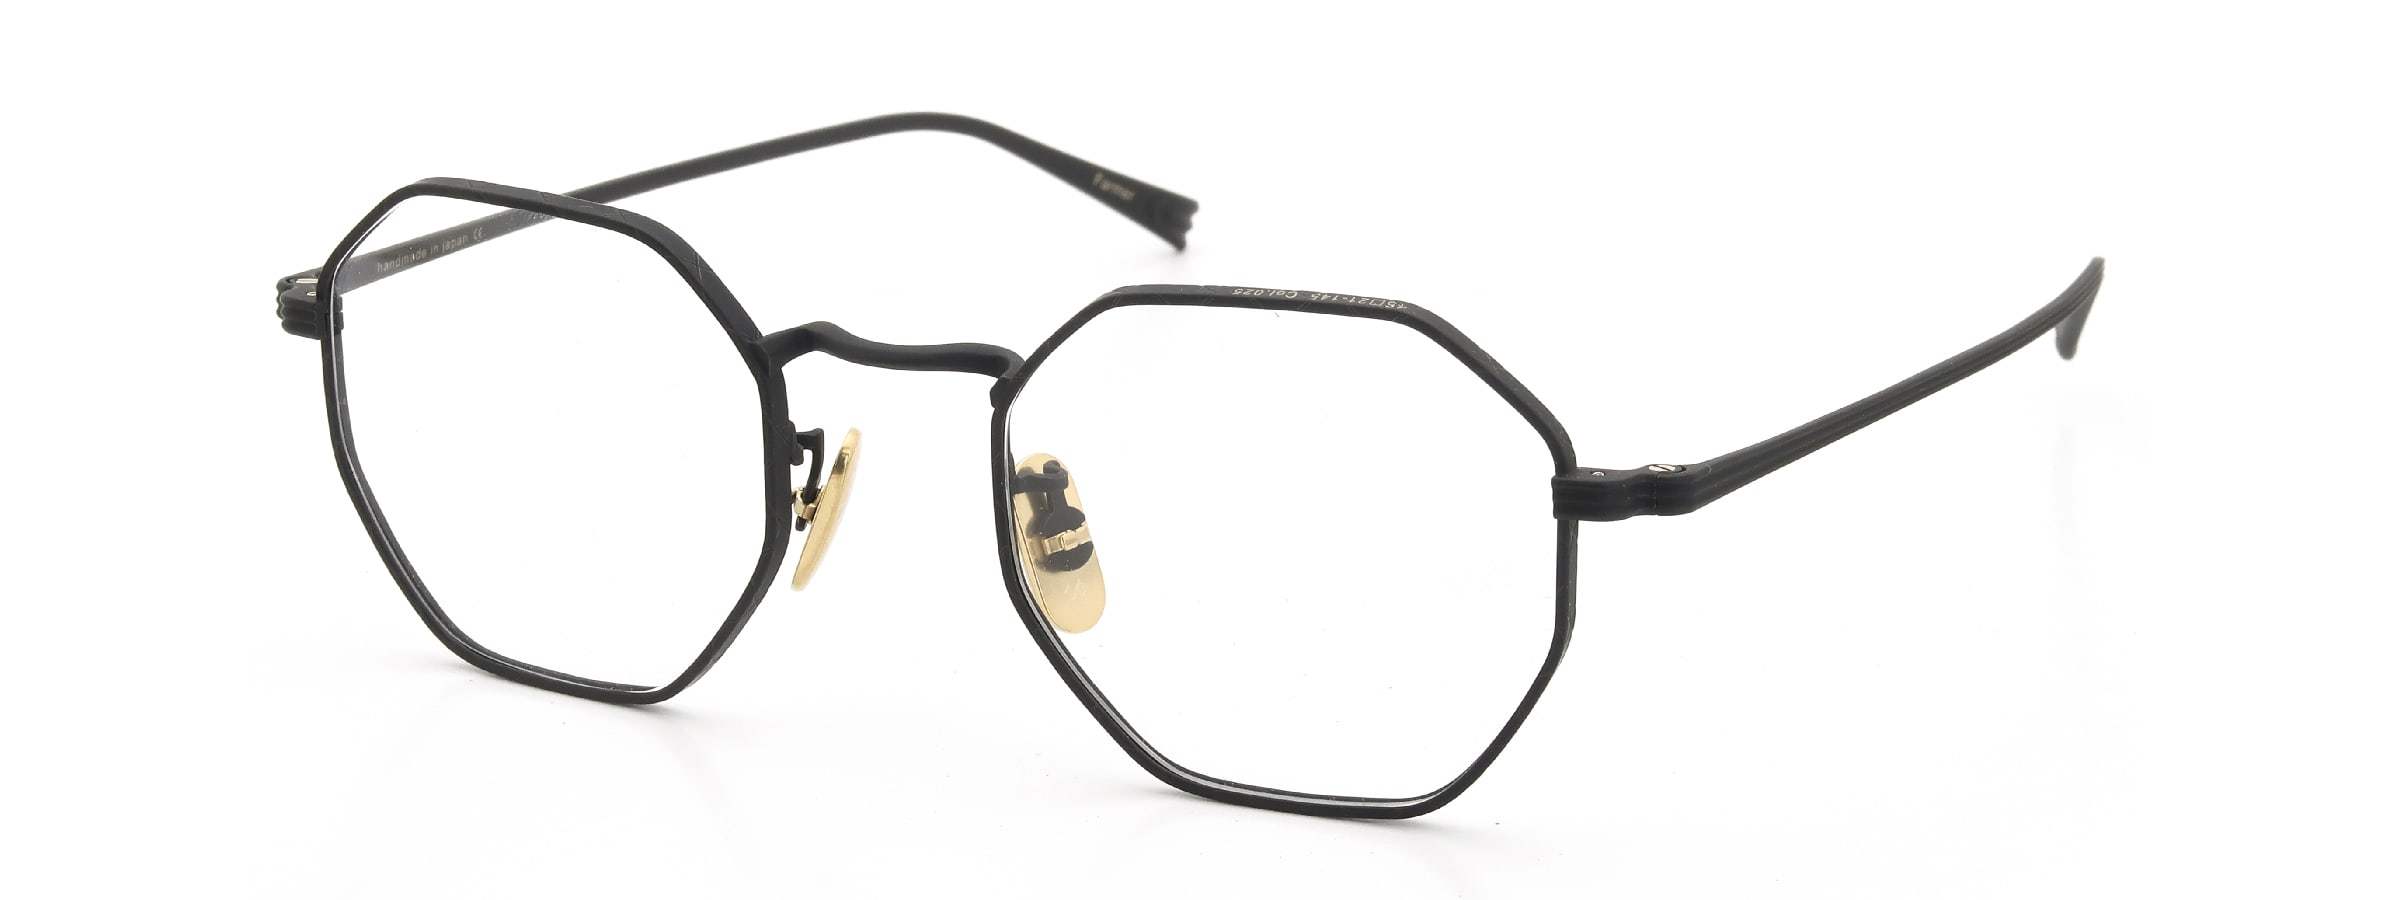 OG × OLIVER GOLDSMITH Farmer 45size